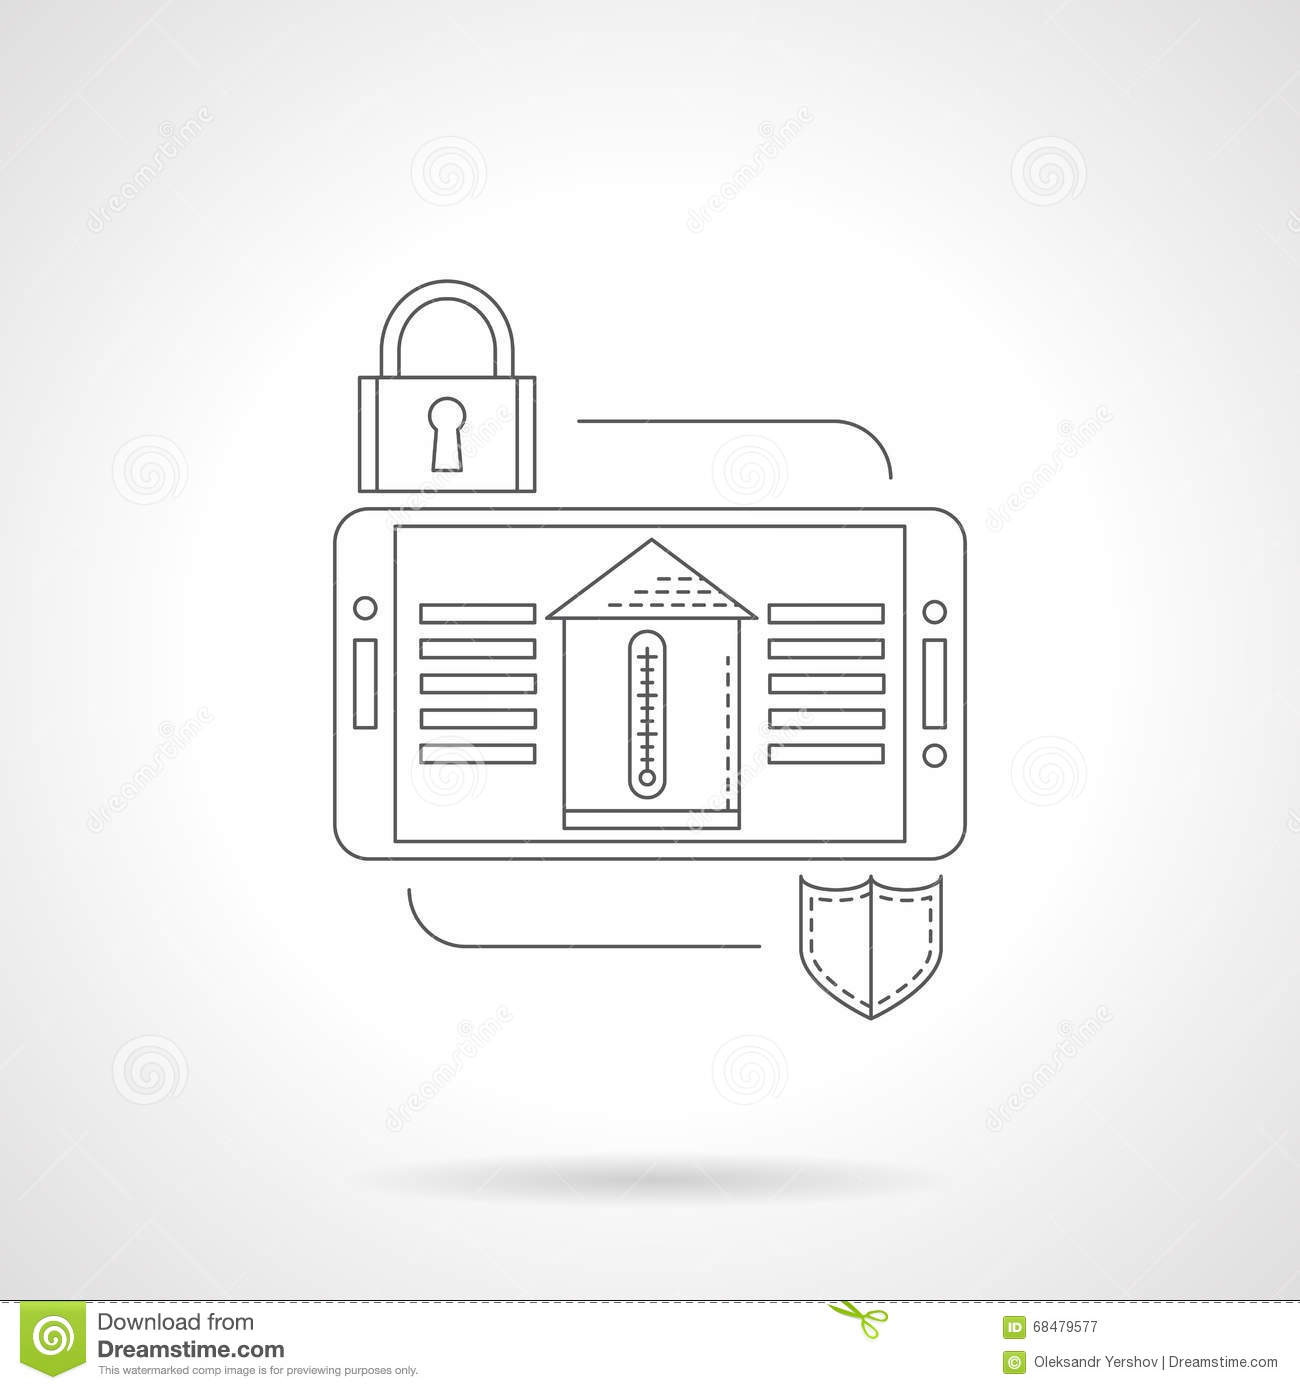 Home Security System Detail Flat Line Icon Illustration 68479577 ...